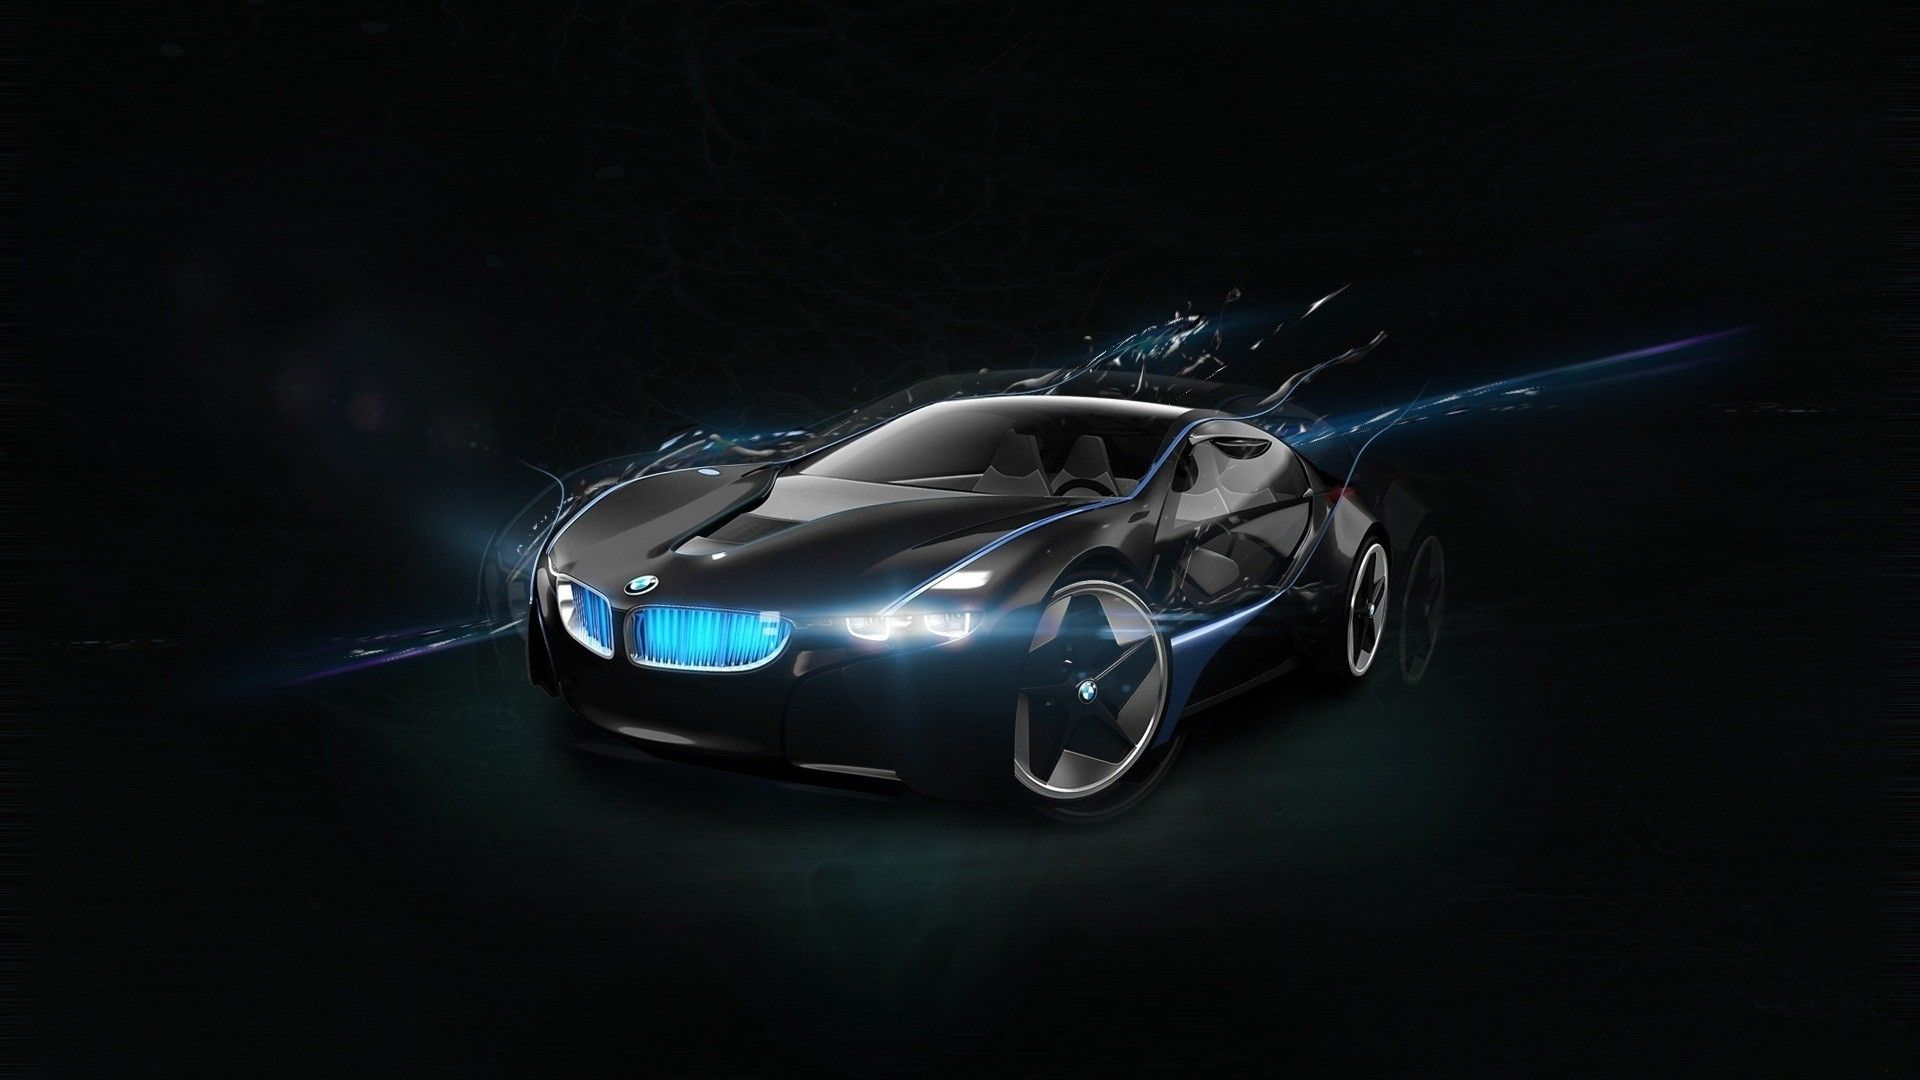 3d wallpapers cars #8